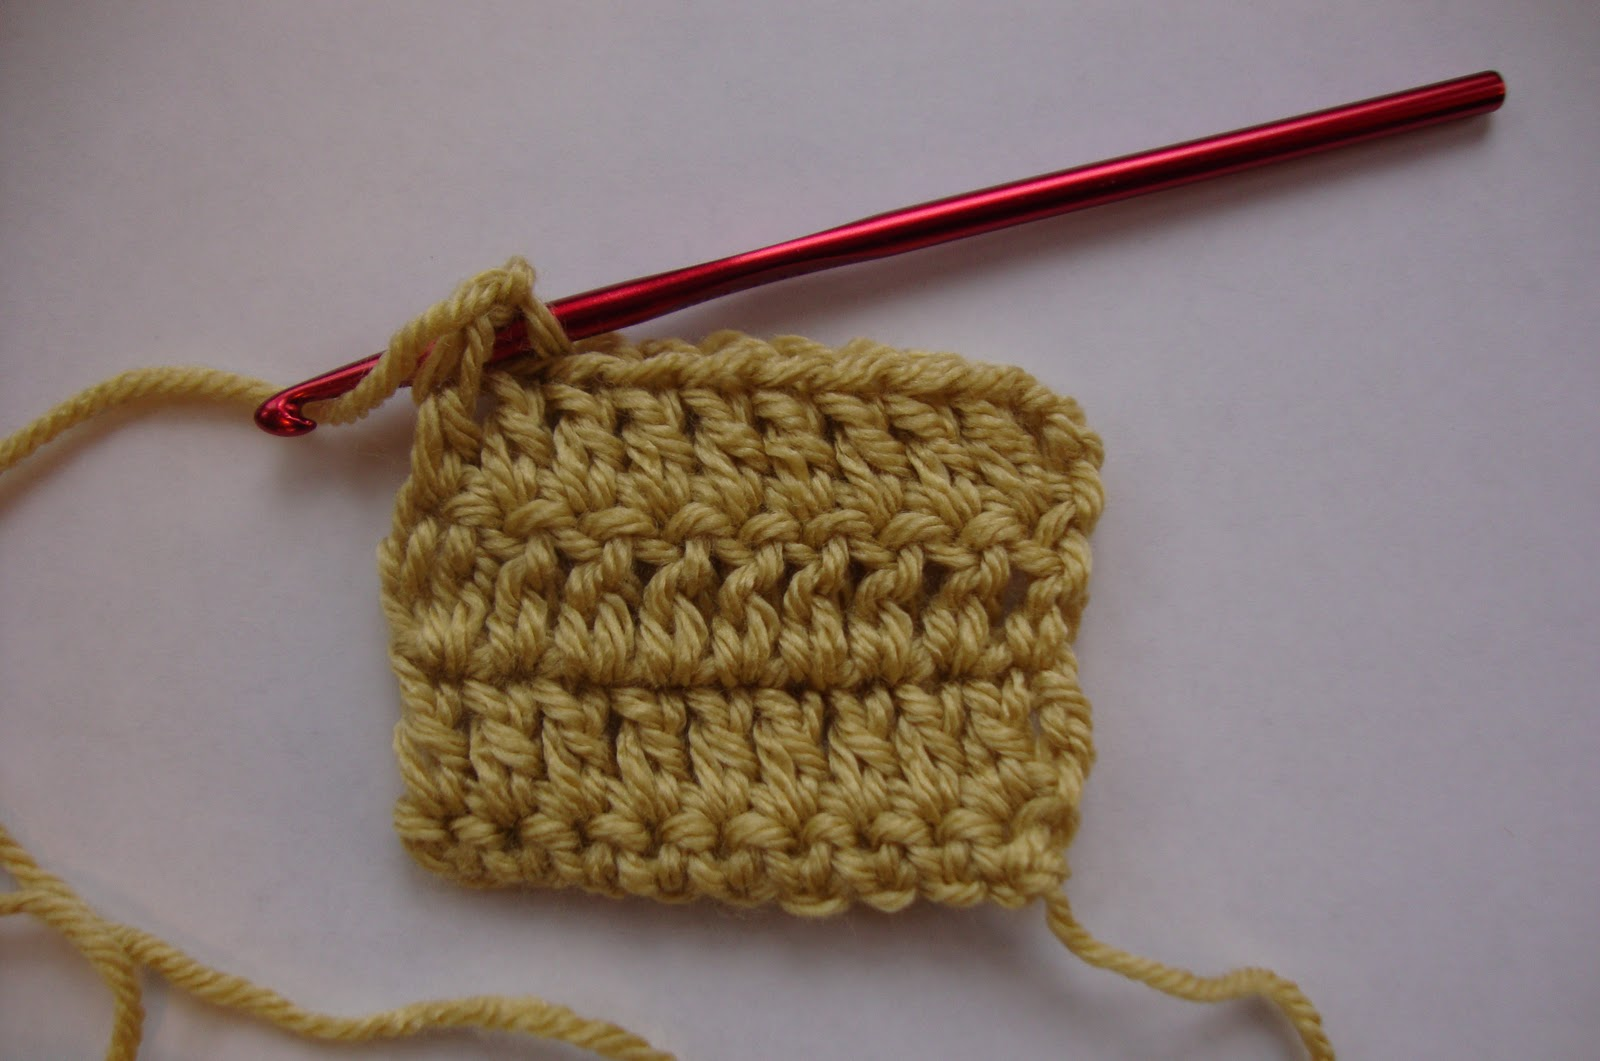 Crochet Stitches Rev Sc : The Good Life: Reverse Single Crochet Tutorial